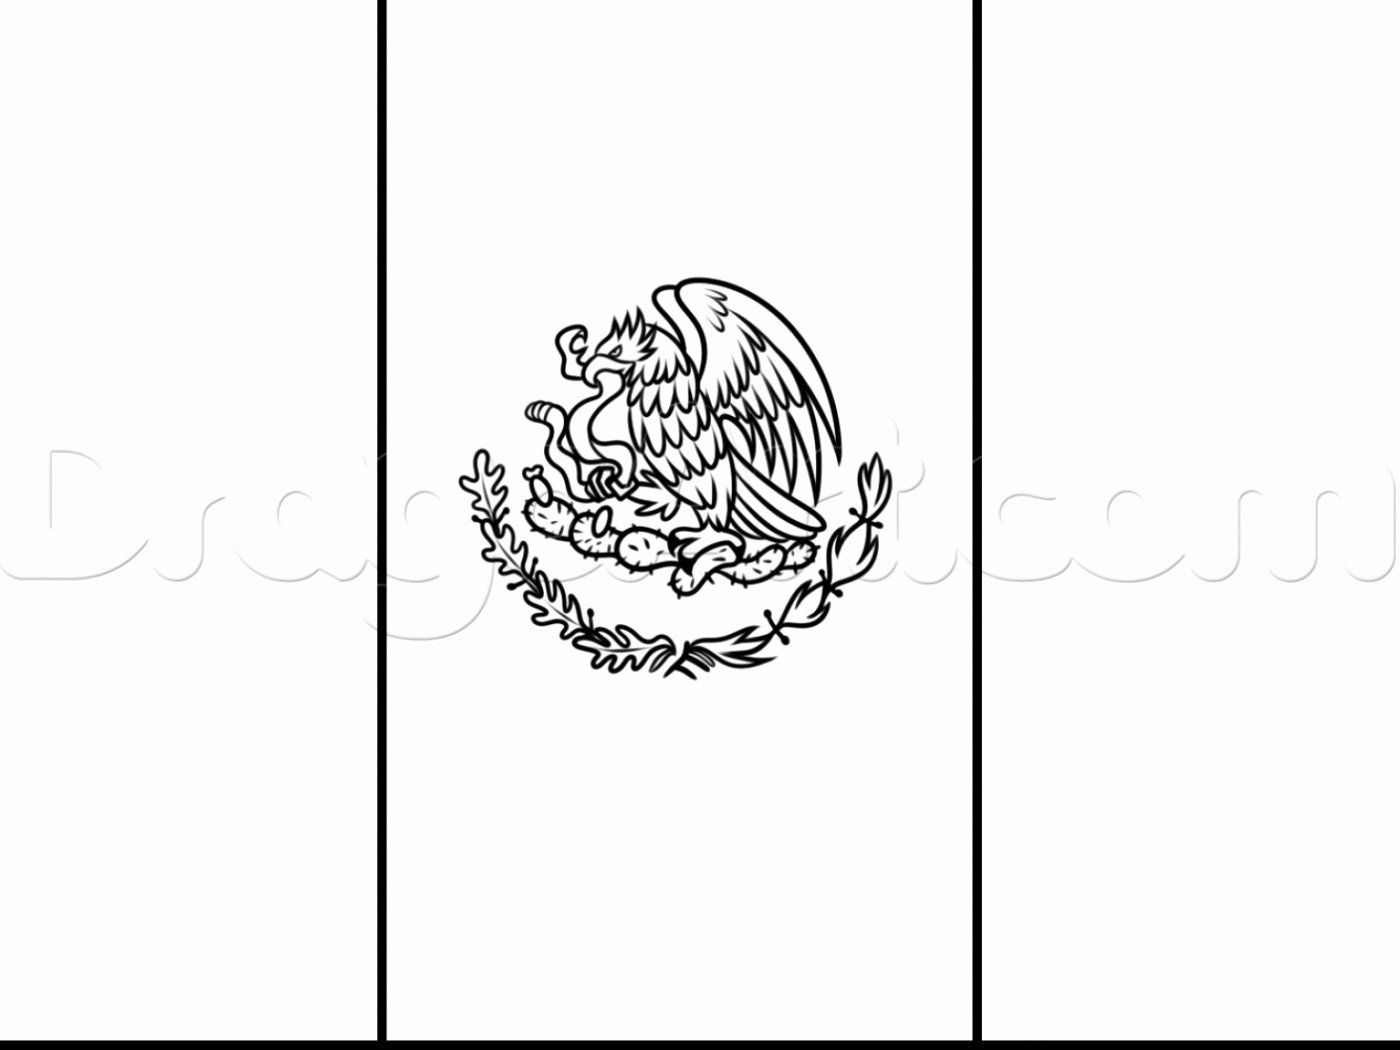 Fiesta Coloring Pages Free Printable Awesome Coloring Sheets Coloring Sheets Mexican Flaglor P Flag Coloring Pages Coloring Pages Free Christmas Coloring Pages